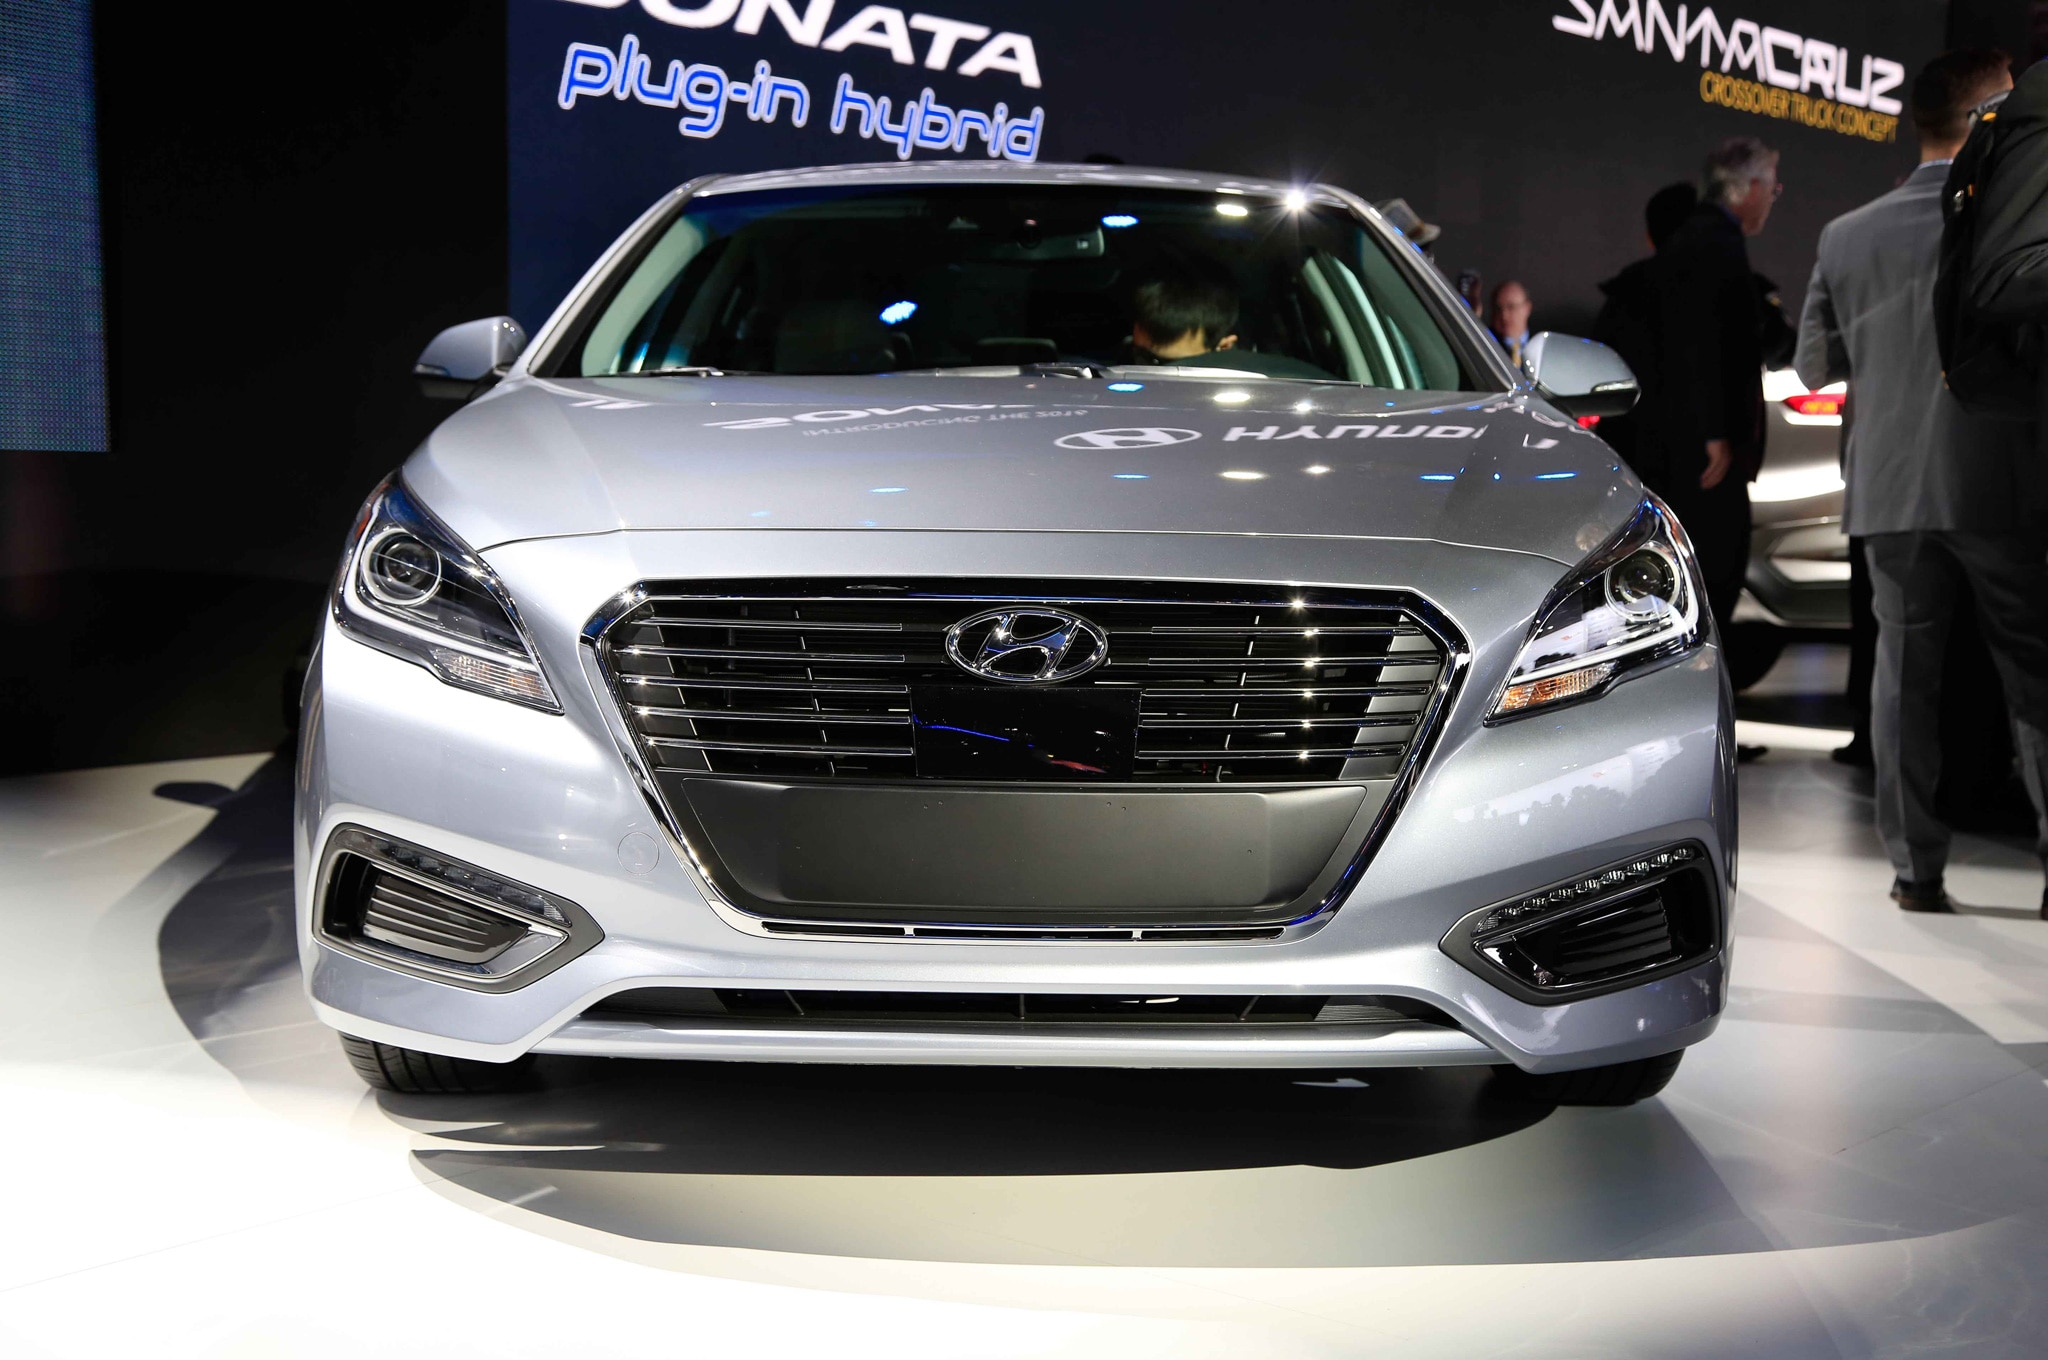 hyundai expected deliver gallery hybrid mi hr multimedia sonata all plug to in english naias players